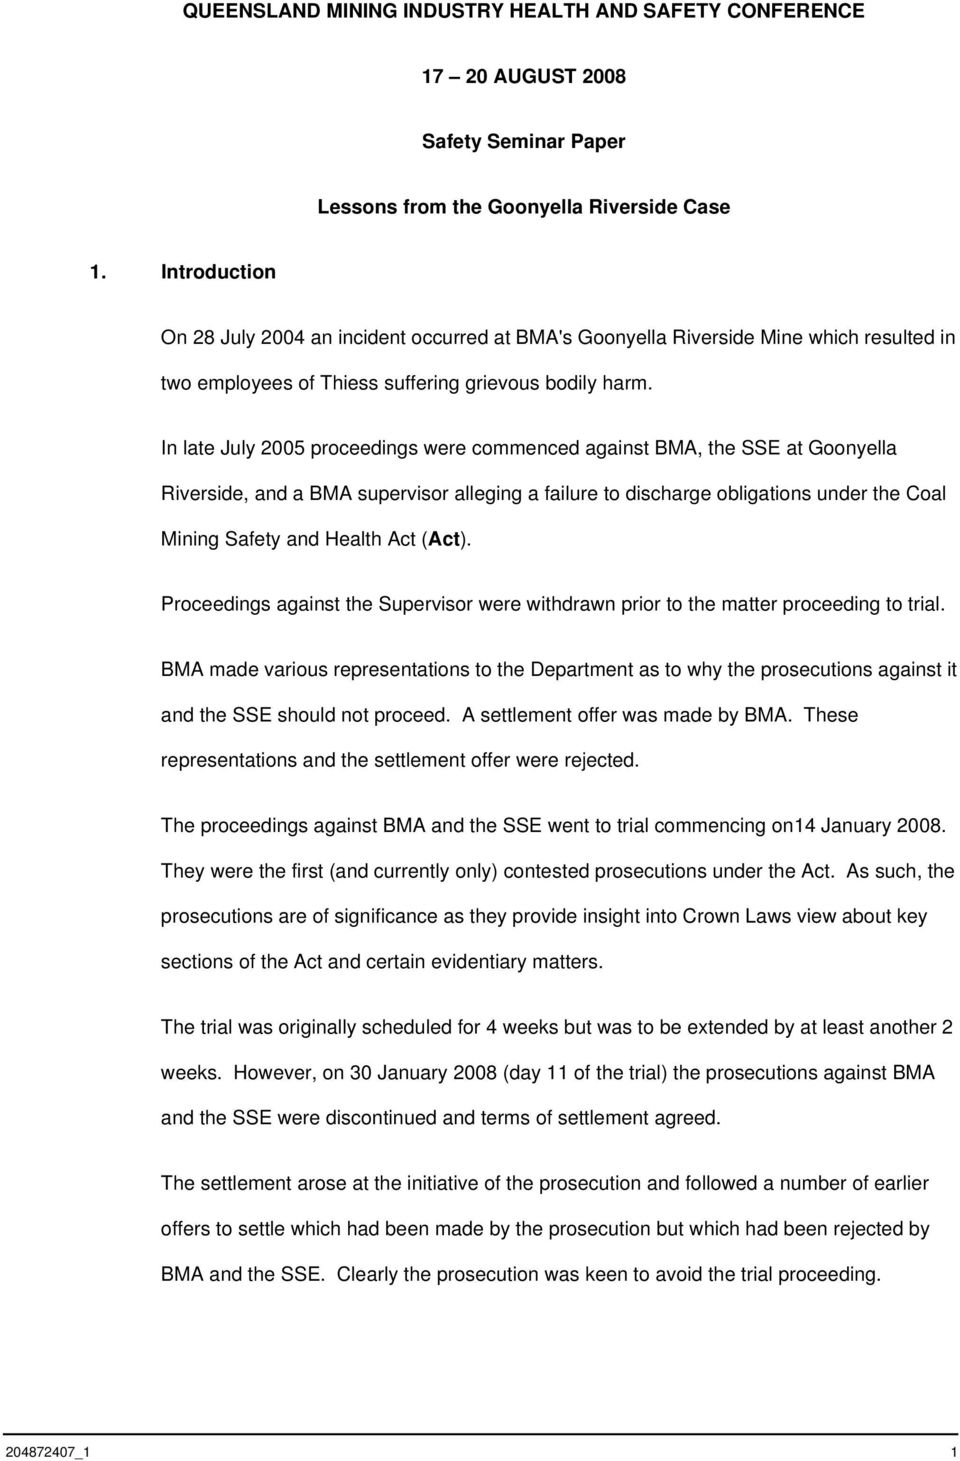 In late July 2005 proceedings were commenced against BMA, the SSE at Goonyella Riverside, and a BMA supervisor alleging a failure to discharge obligations under the Coal Mining Safety and Health Act